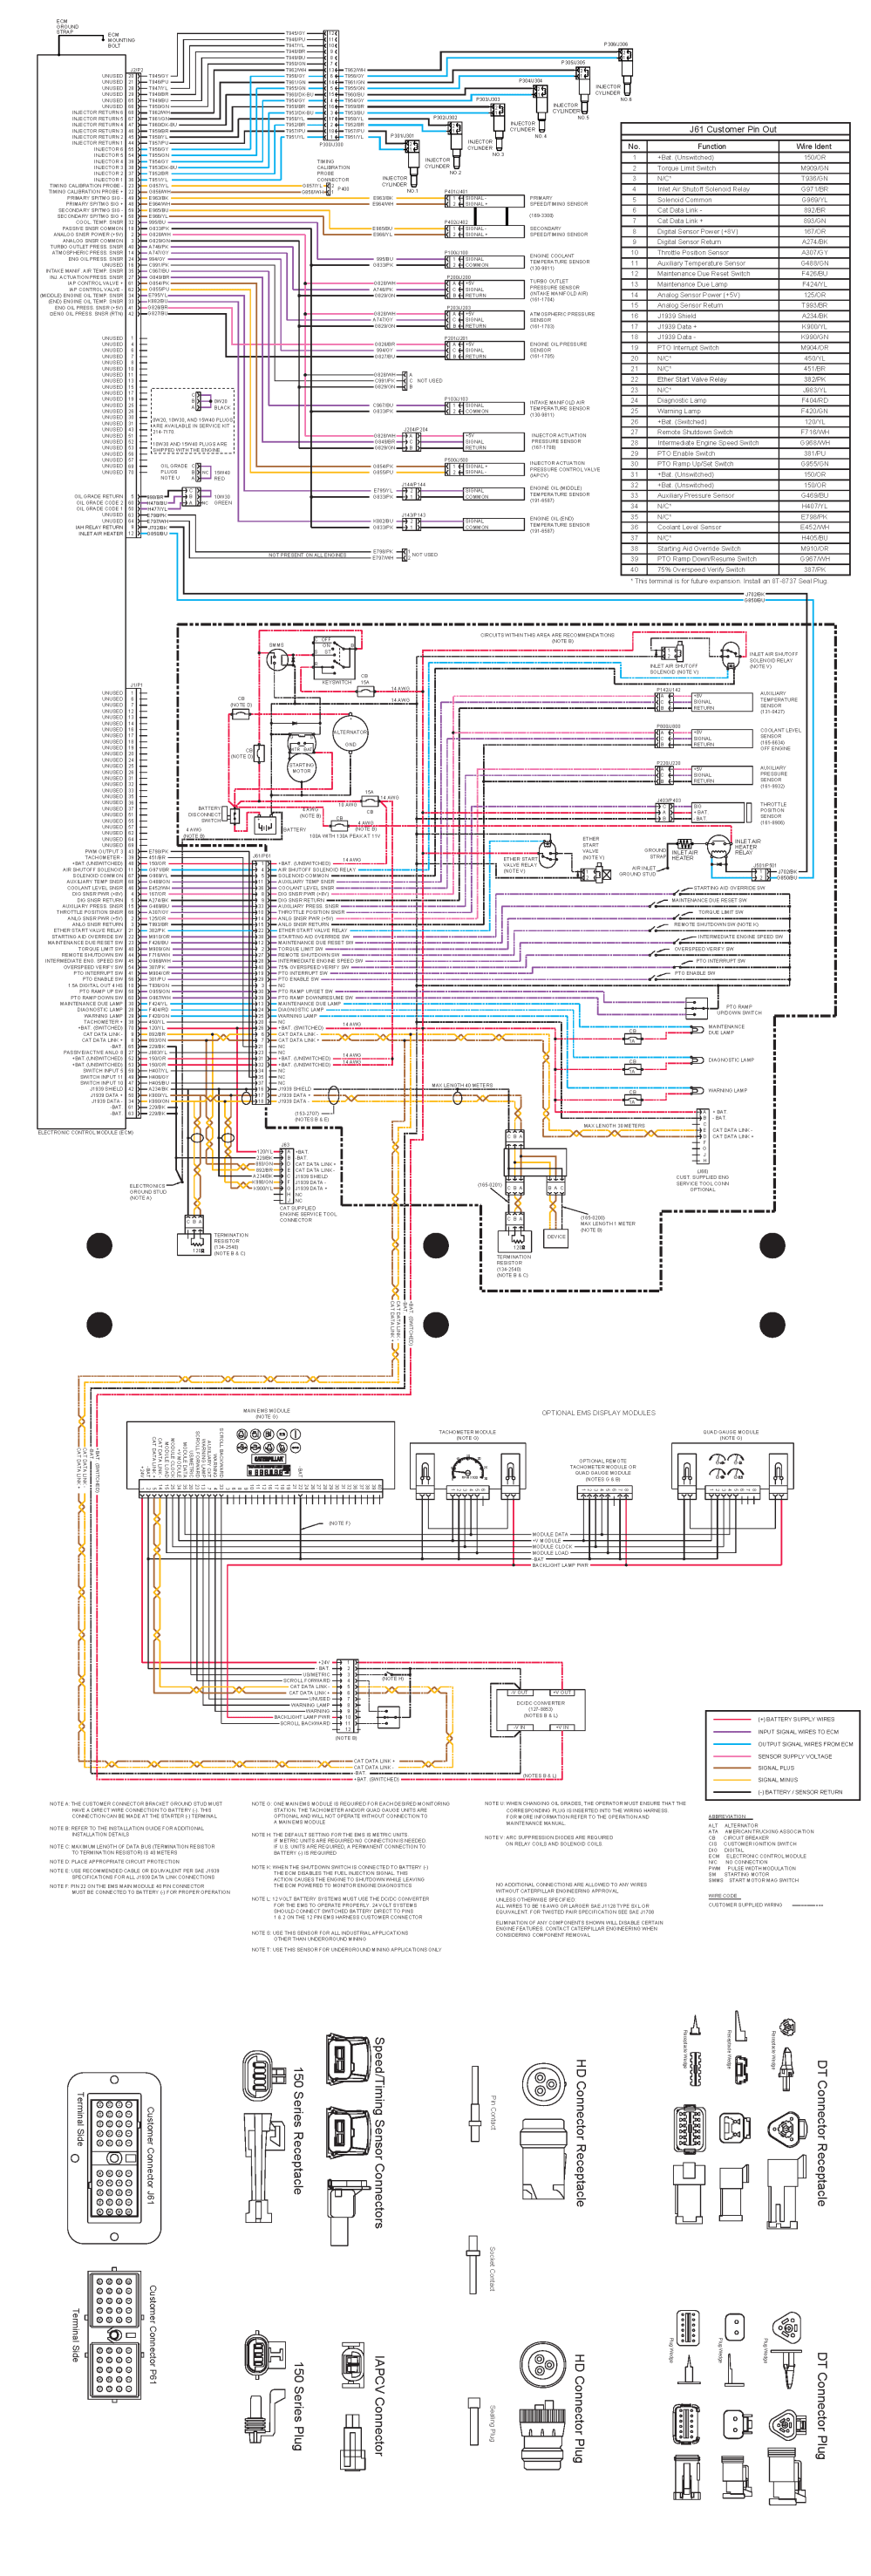 medium resolution of caterpillar electrical schematic 625mb searchable printable pdf rh pagelarge com